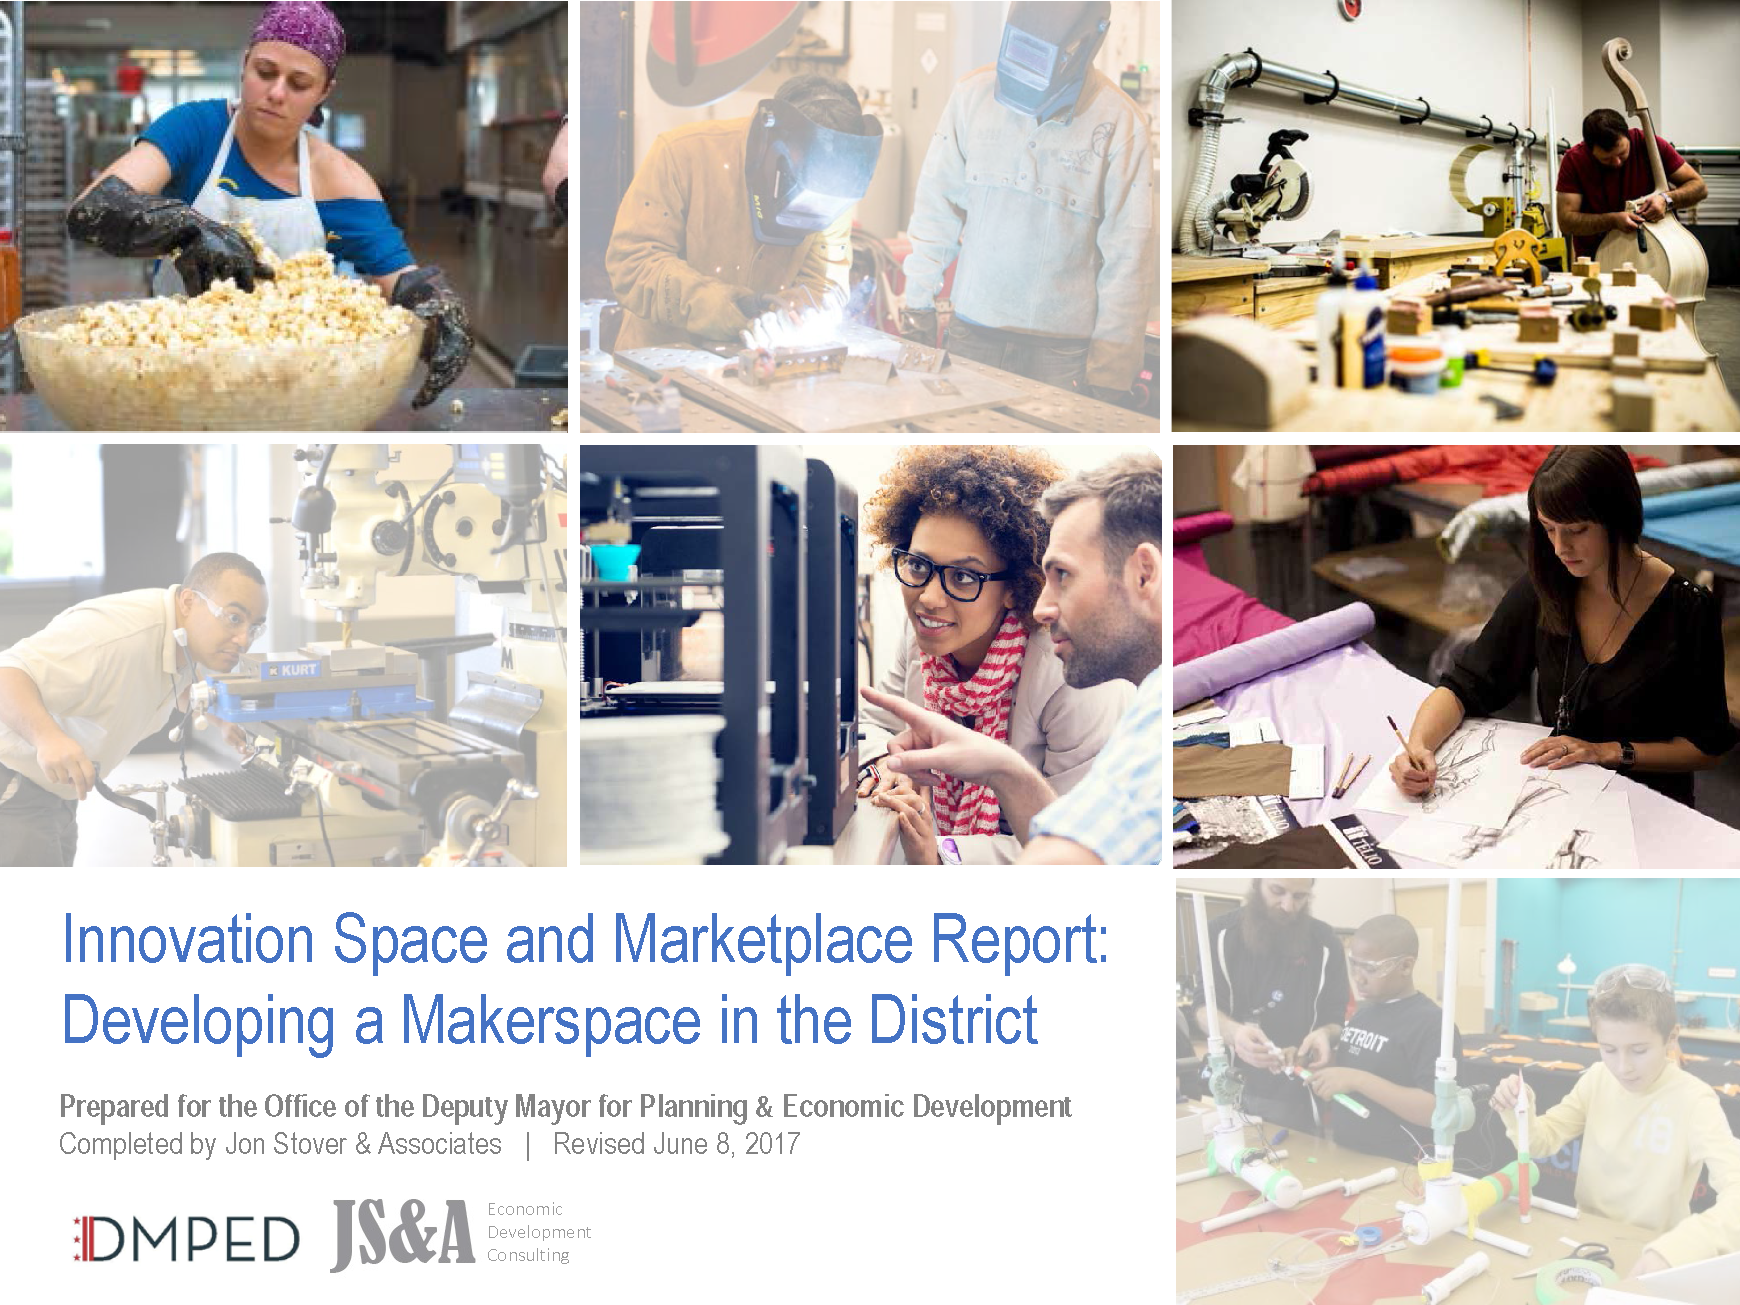 Innovation Space and Marketplace Report: Developing a Makerspace in the District